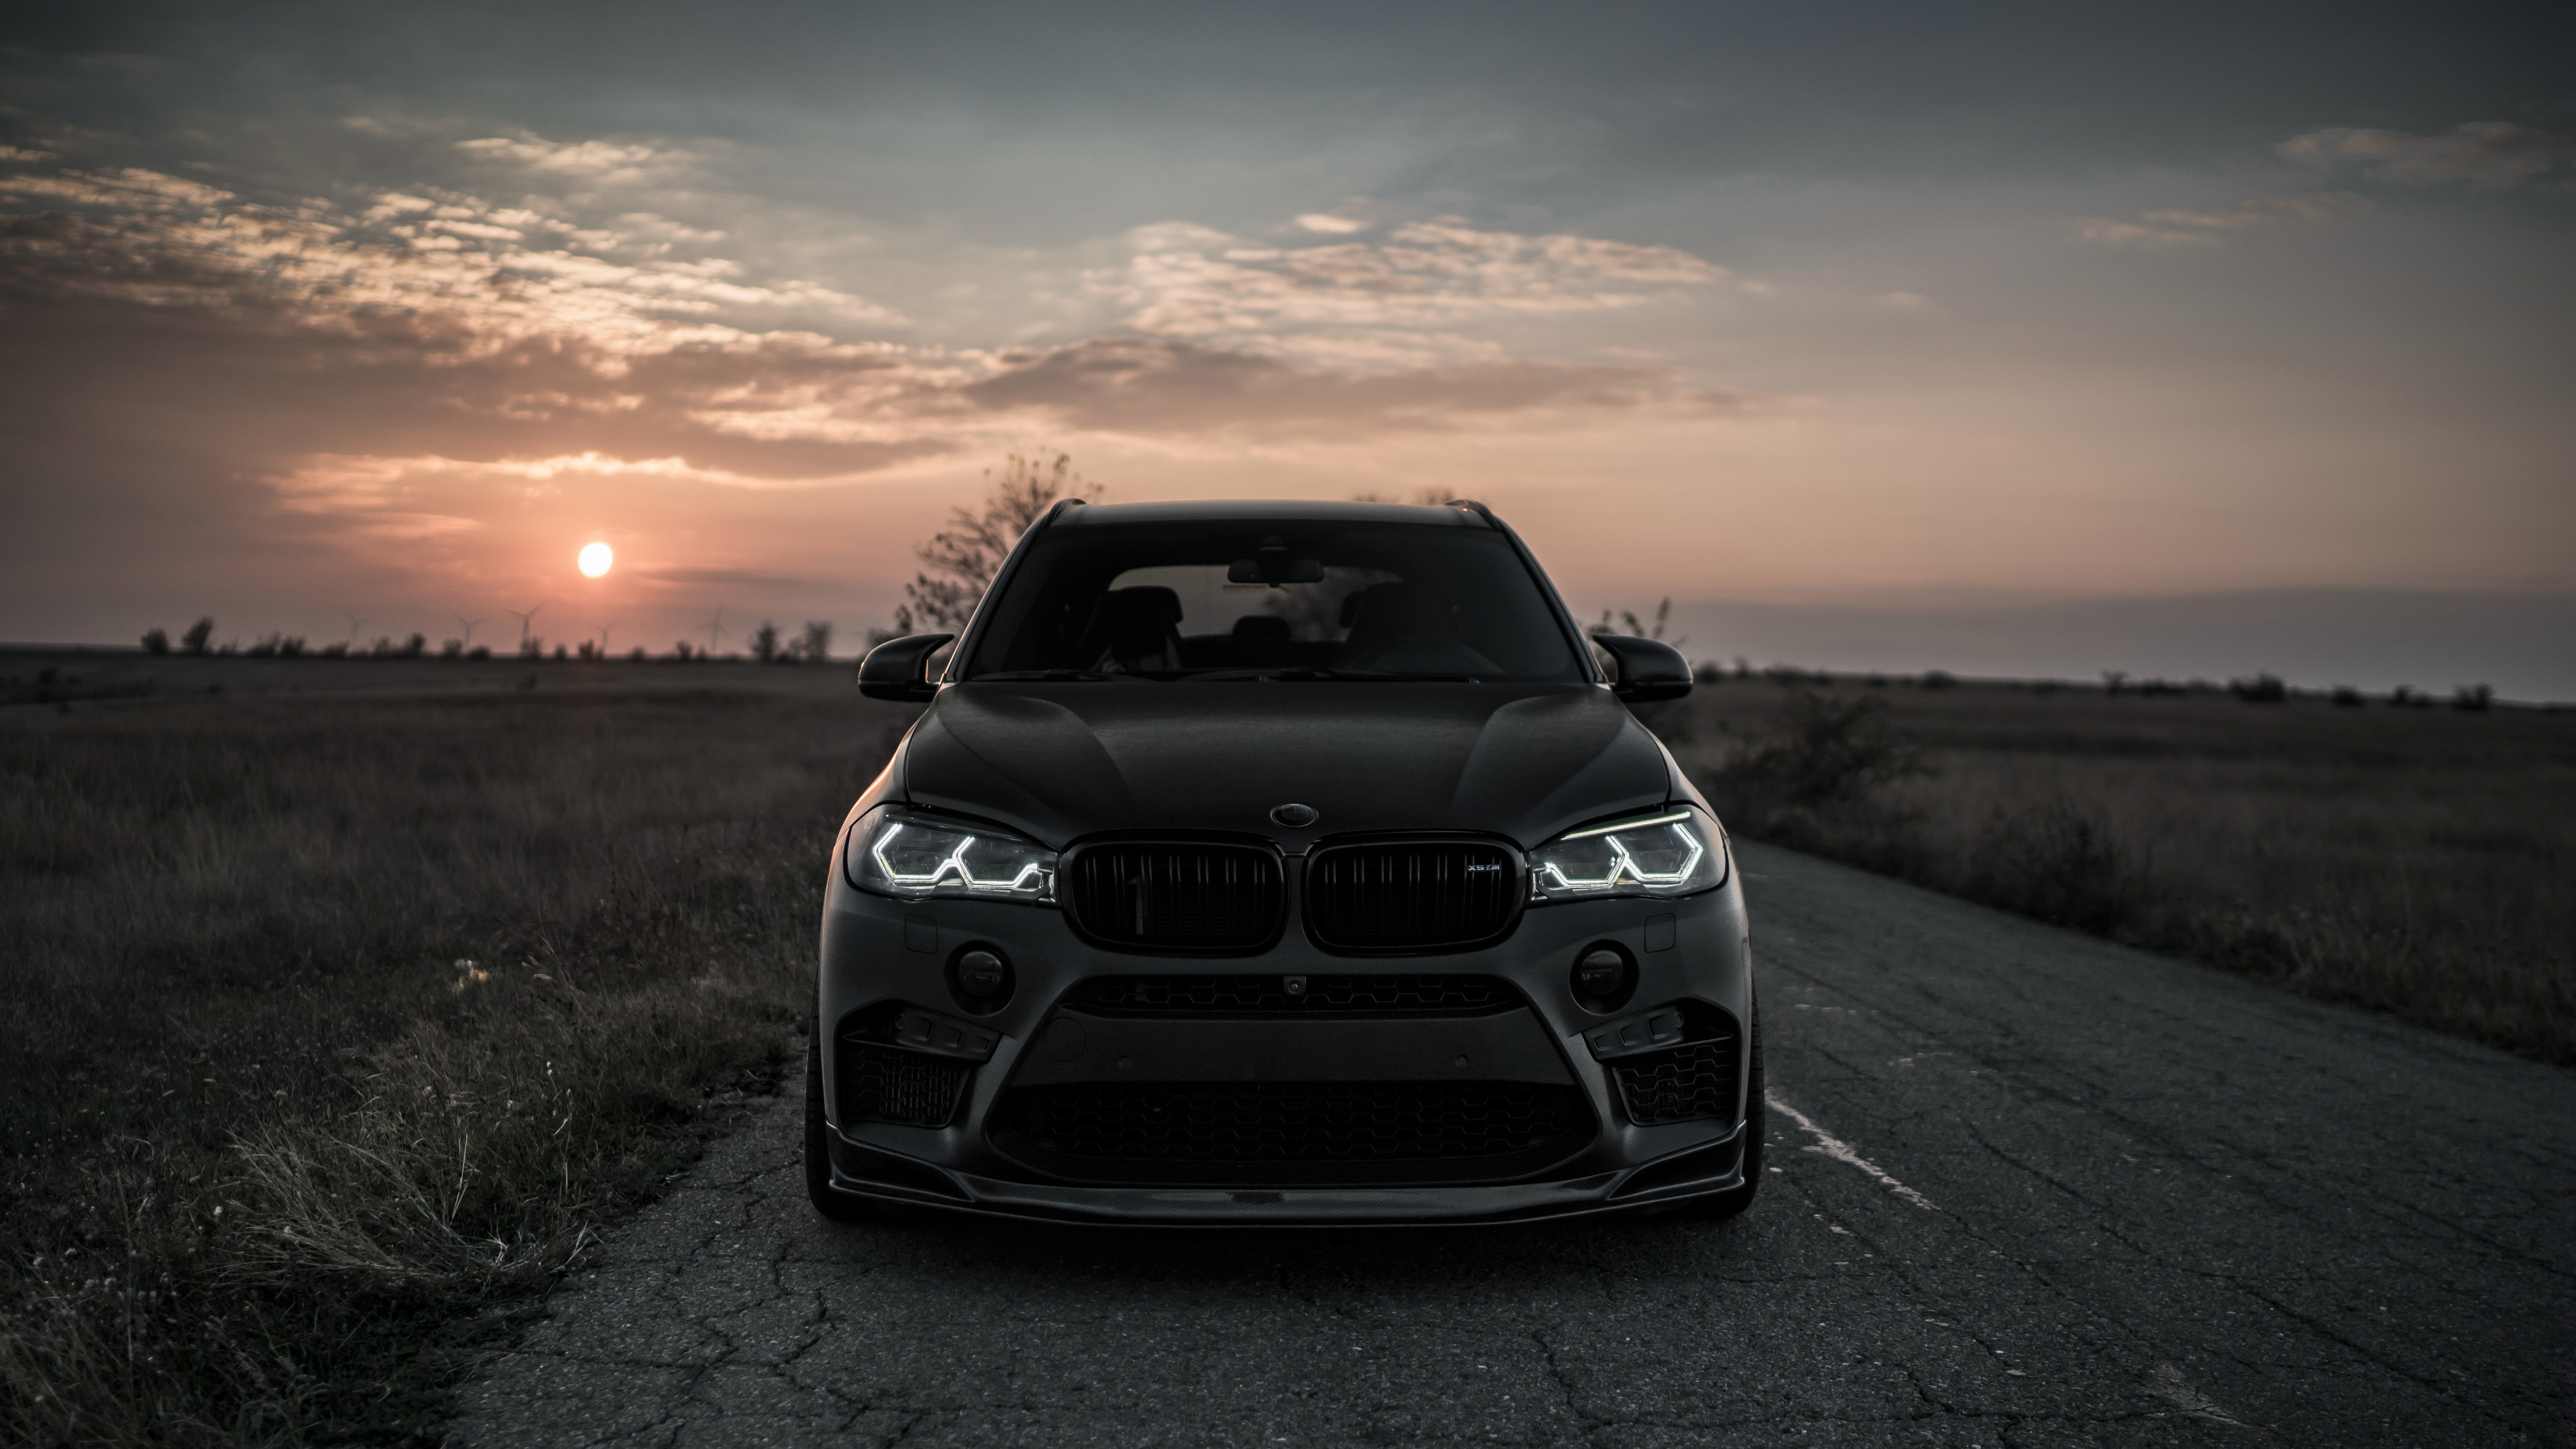 Bmw X5m Wallpaper Hd 2018 Bmw X5 Z Performance Hd Cars 4k Wallpapers Images